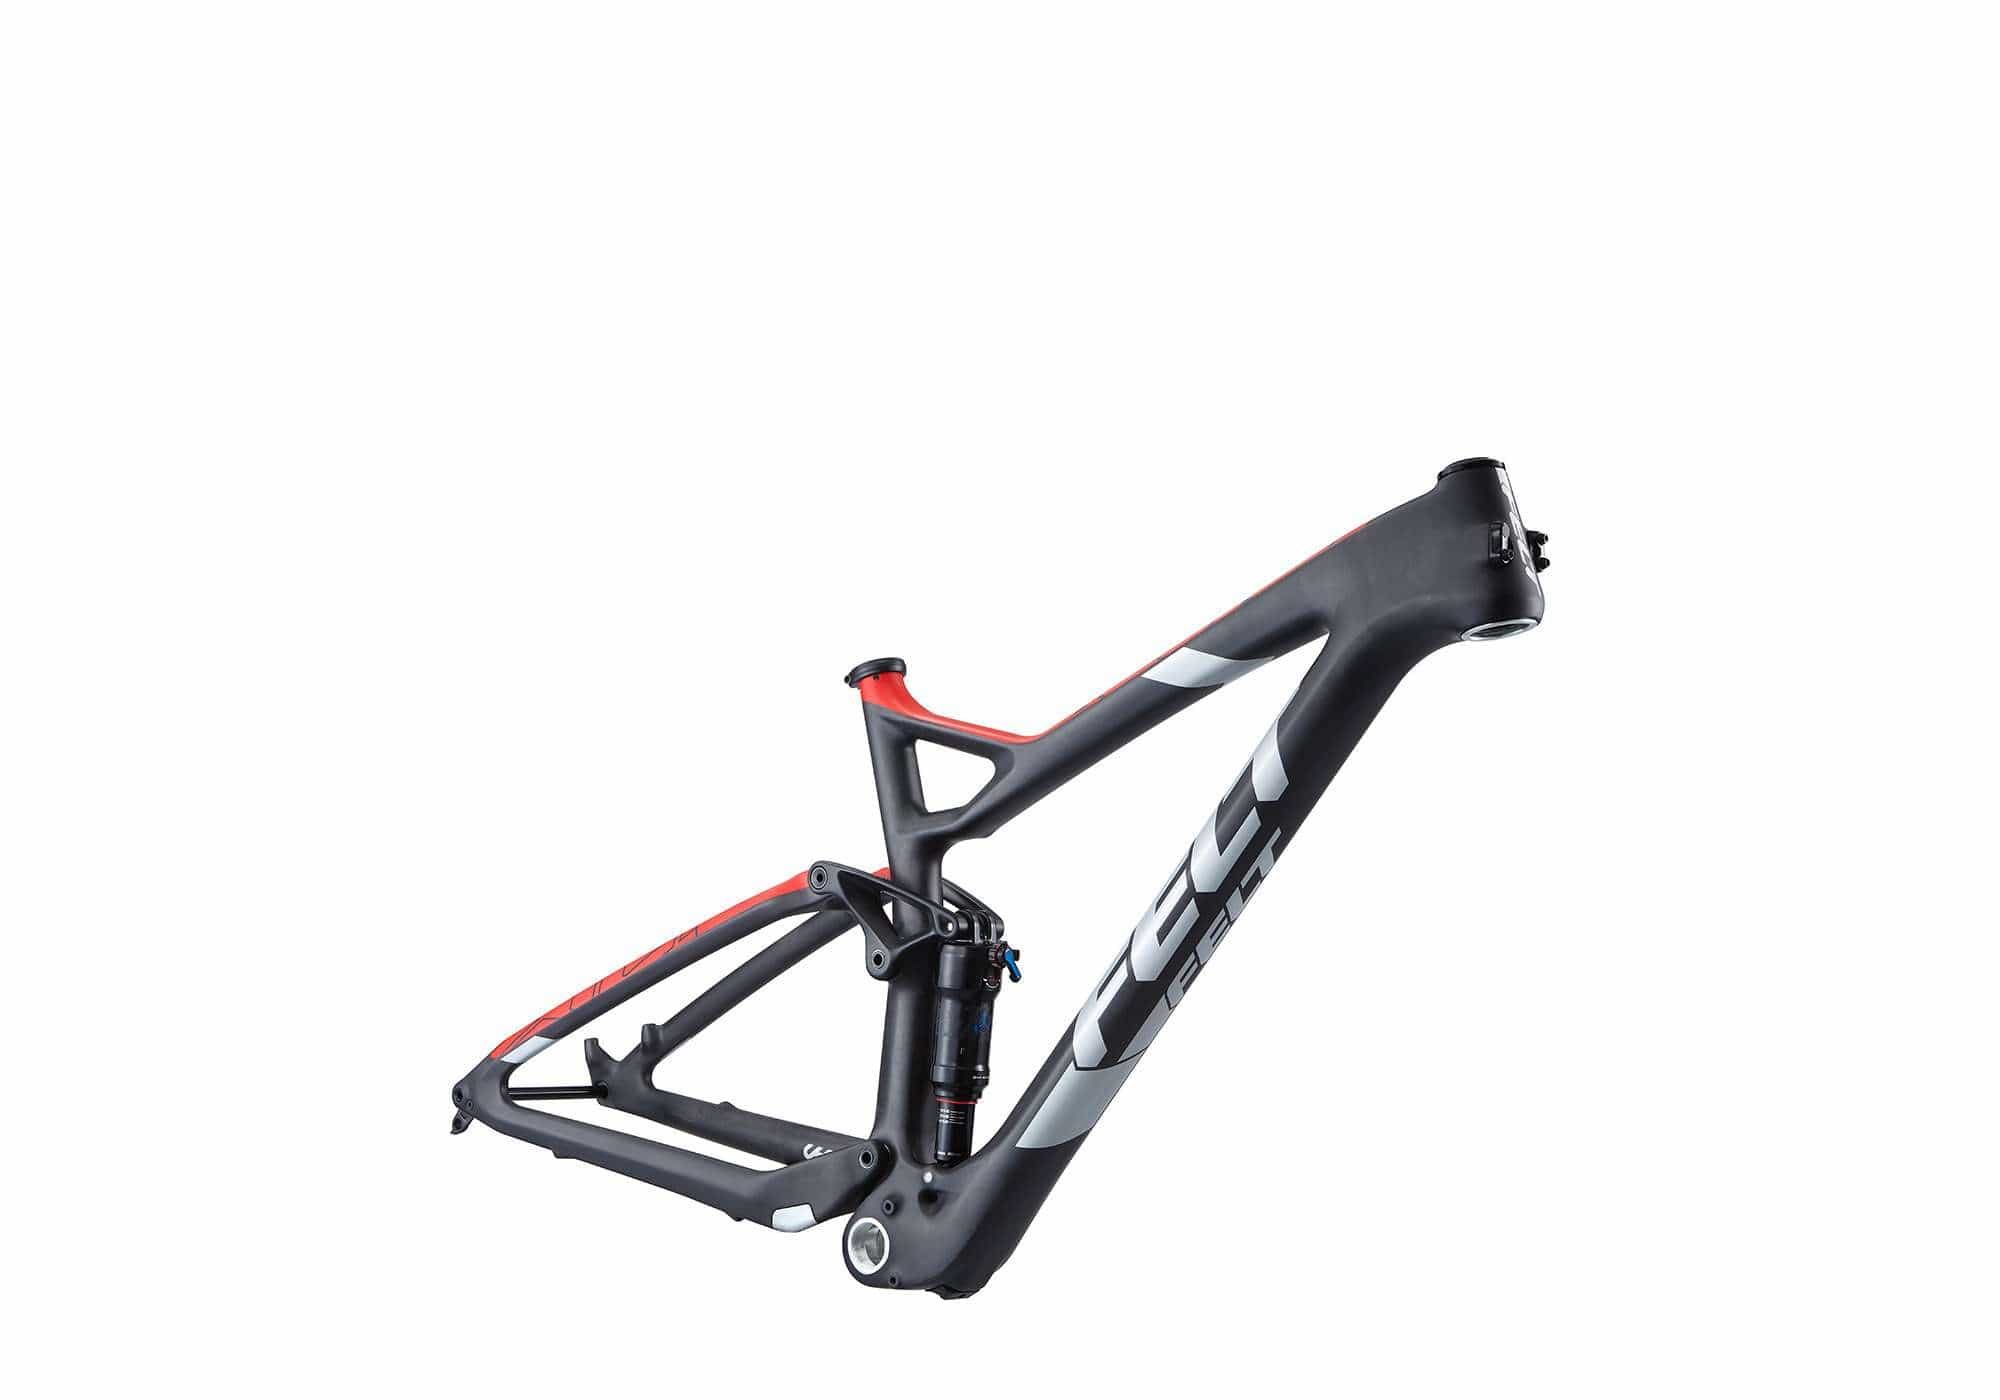 FRAME EDICT 1 CROSS COUNTRY MOUNTAIN FRAME - Felt Bicycles 14581ee71